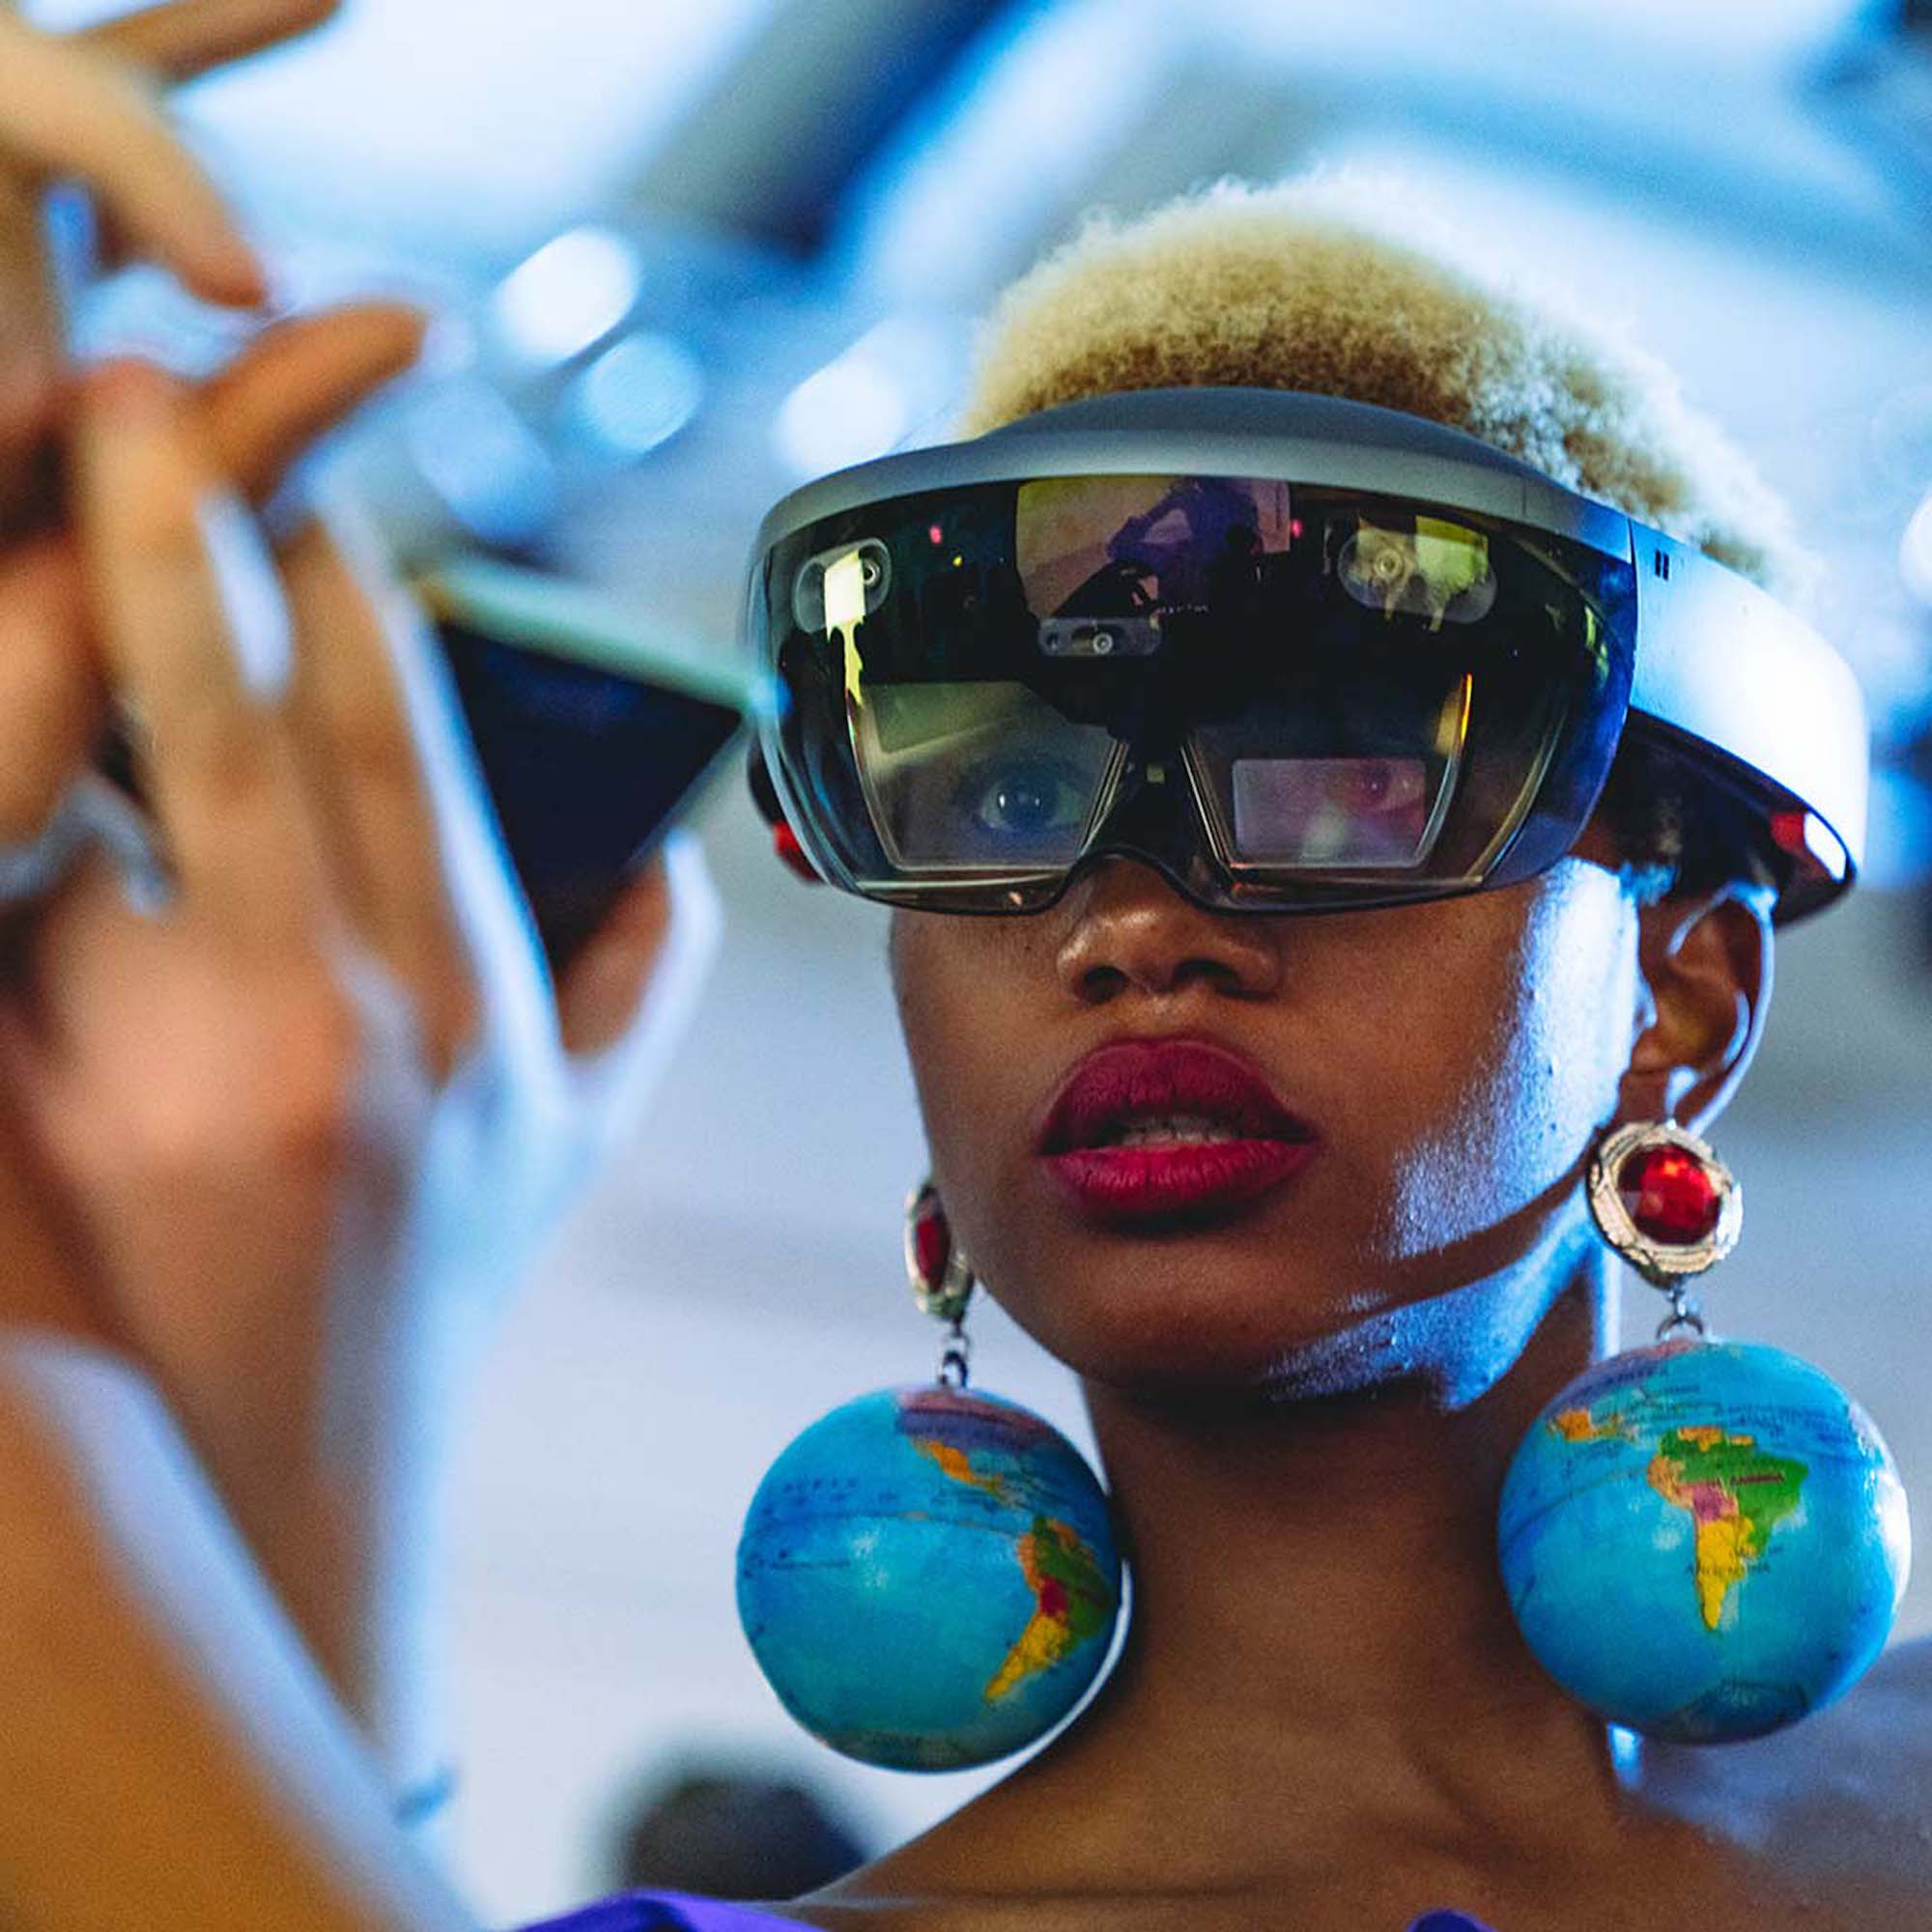 Lady wearing a Microsoft HoloLens augmented reality device